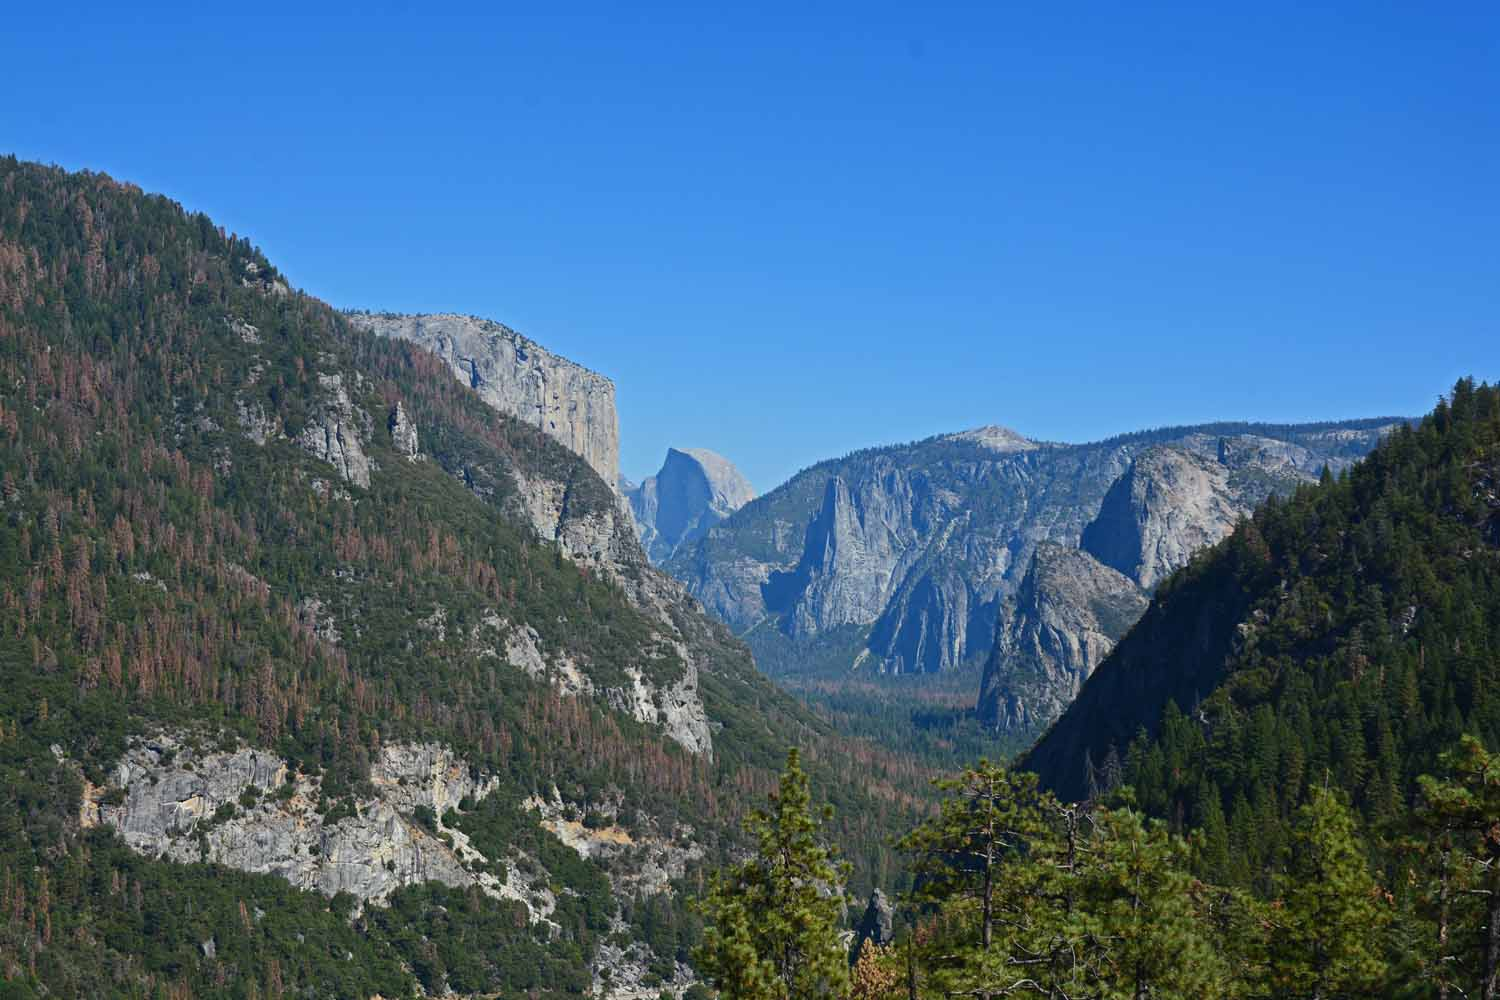 Can you pick out Half Dome...  Taken from the Glacier Point road.